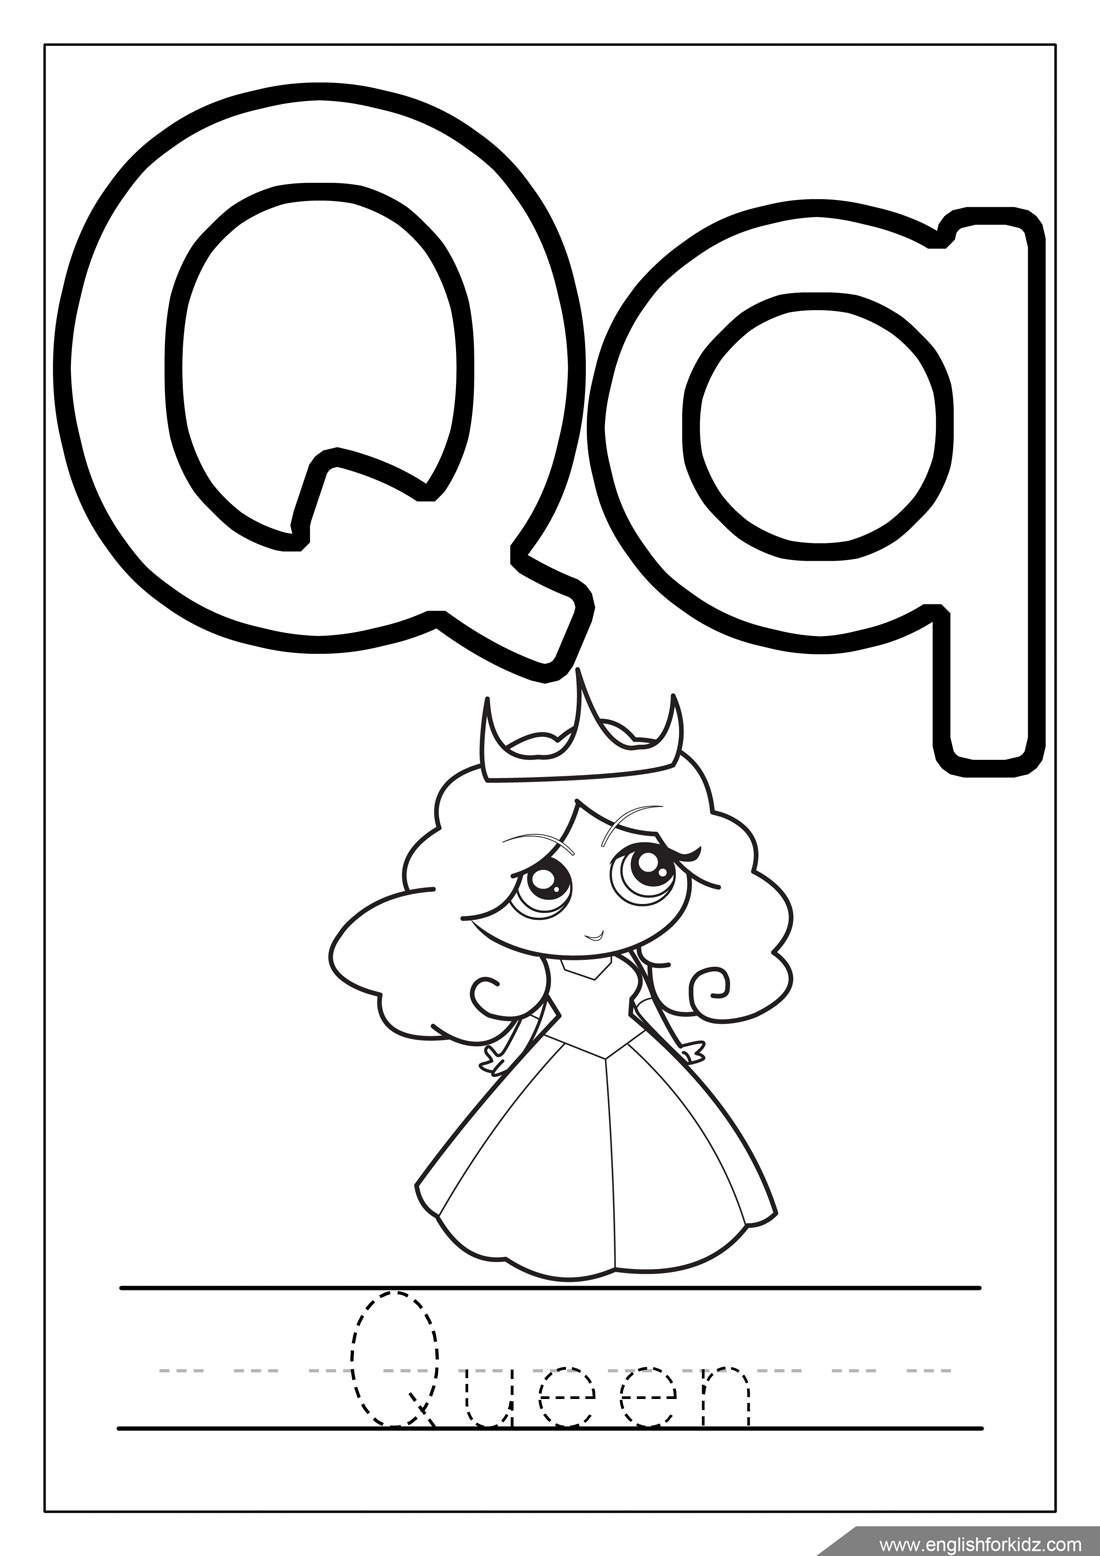 coloring worksheets abc the full alphabet coloring pages worksheets abc coloring